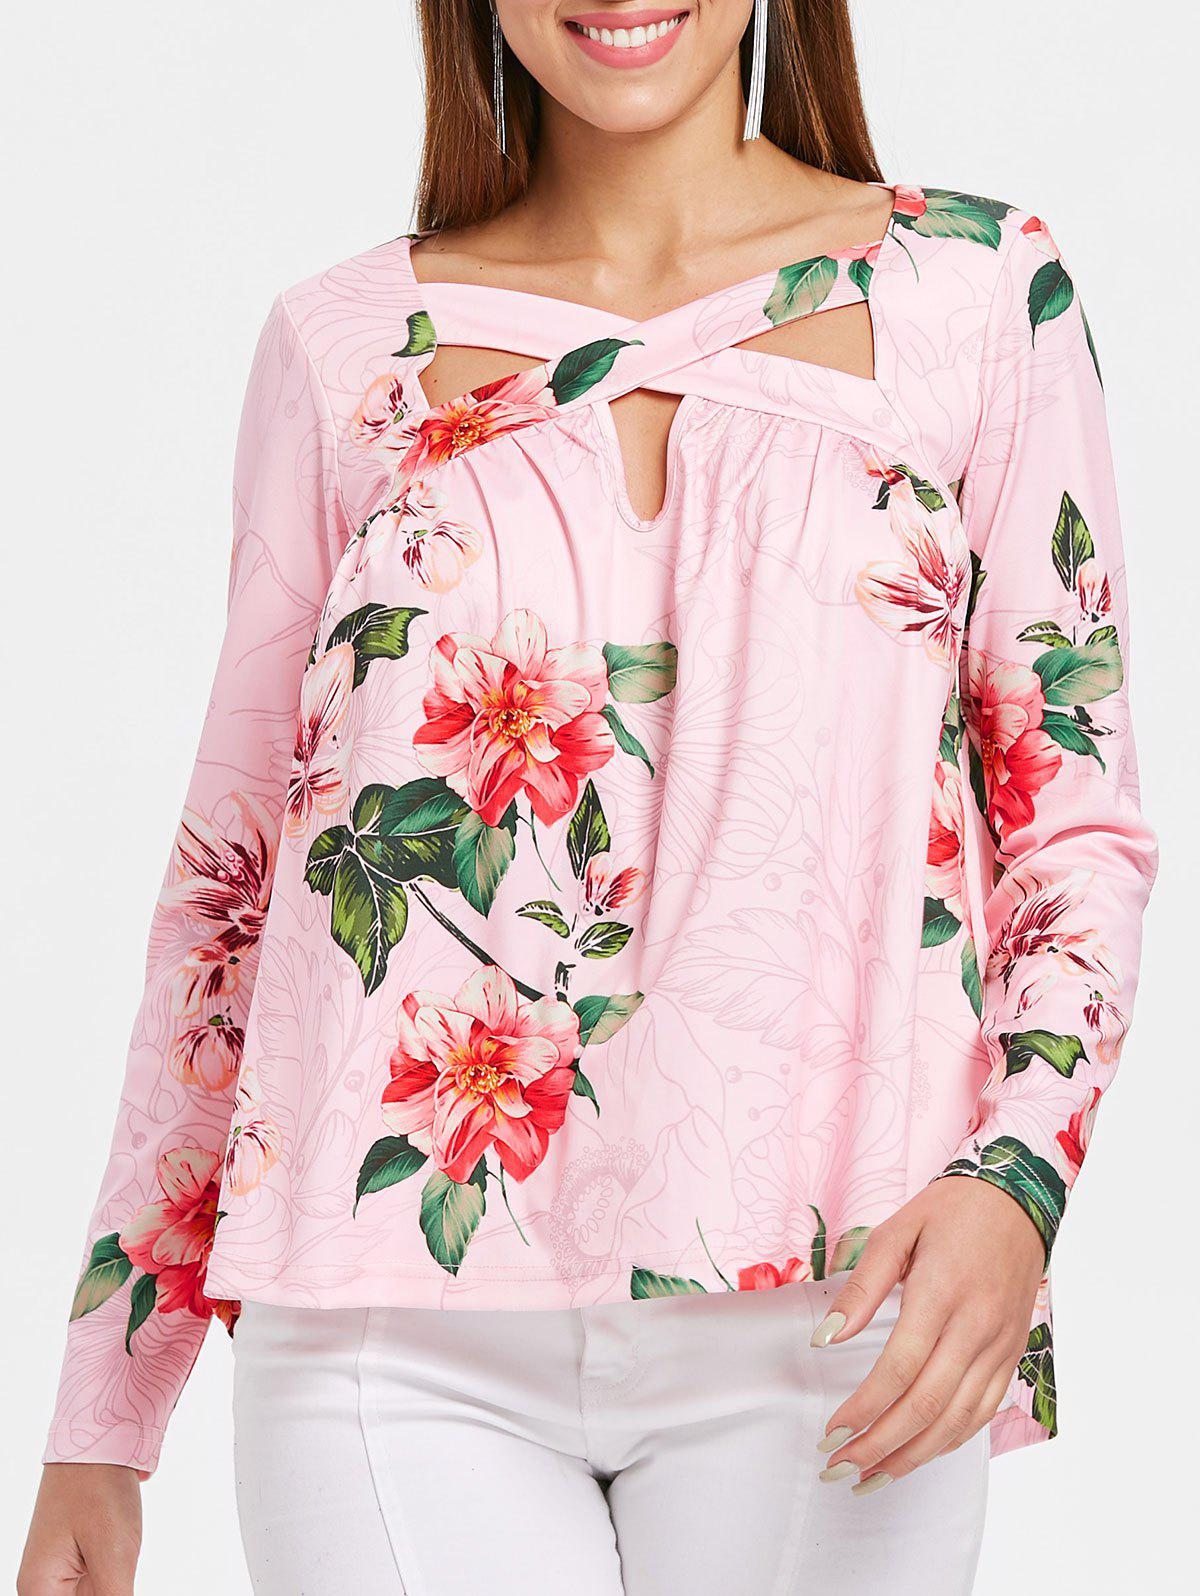 Store Floral Print Full Sleeve T-shirt